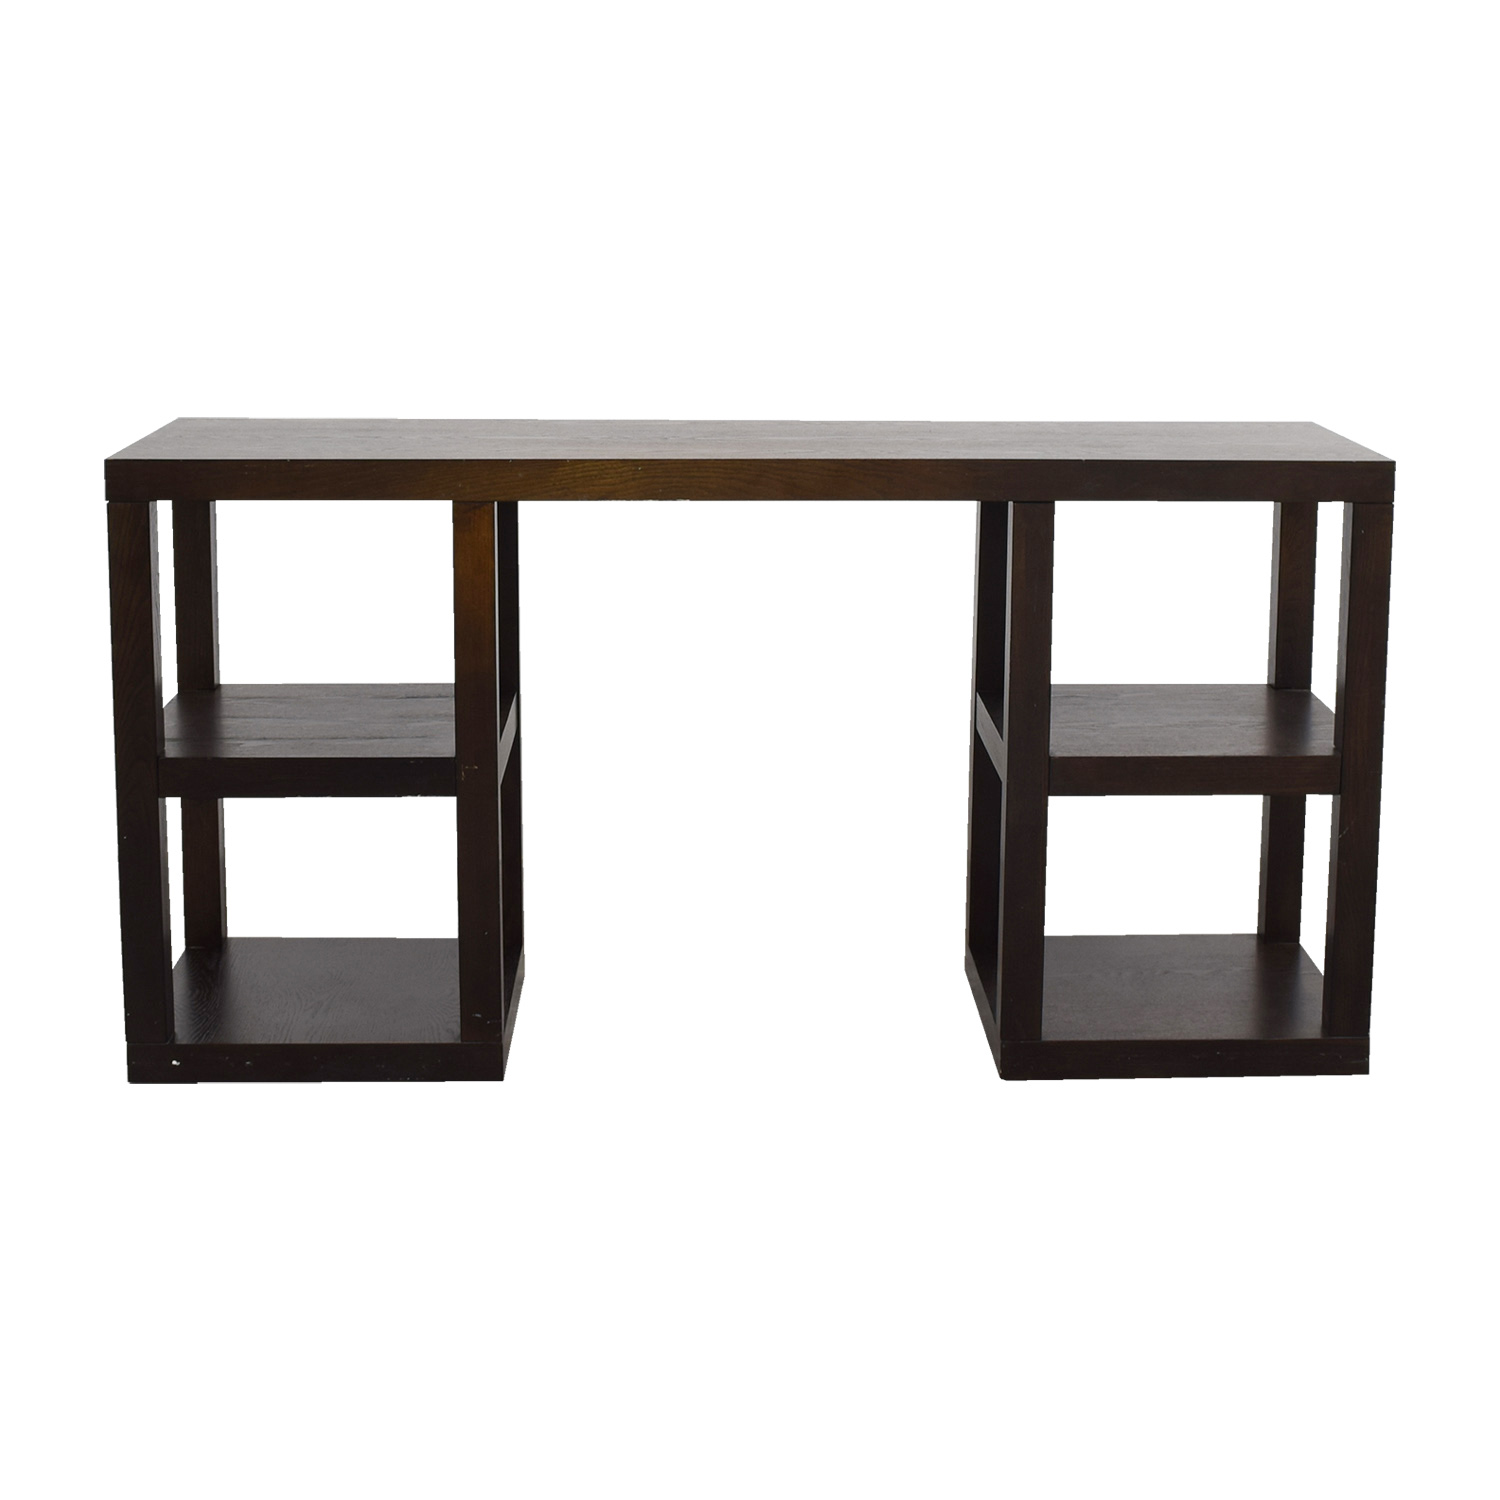 West Elm West Elm Desk with Shelves coupon